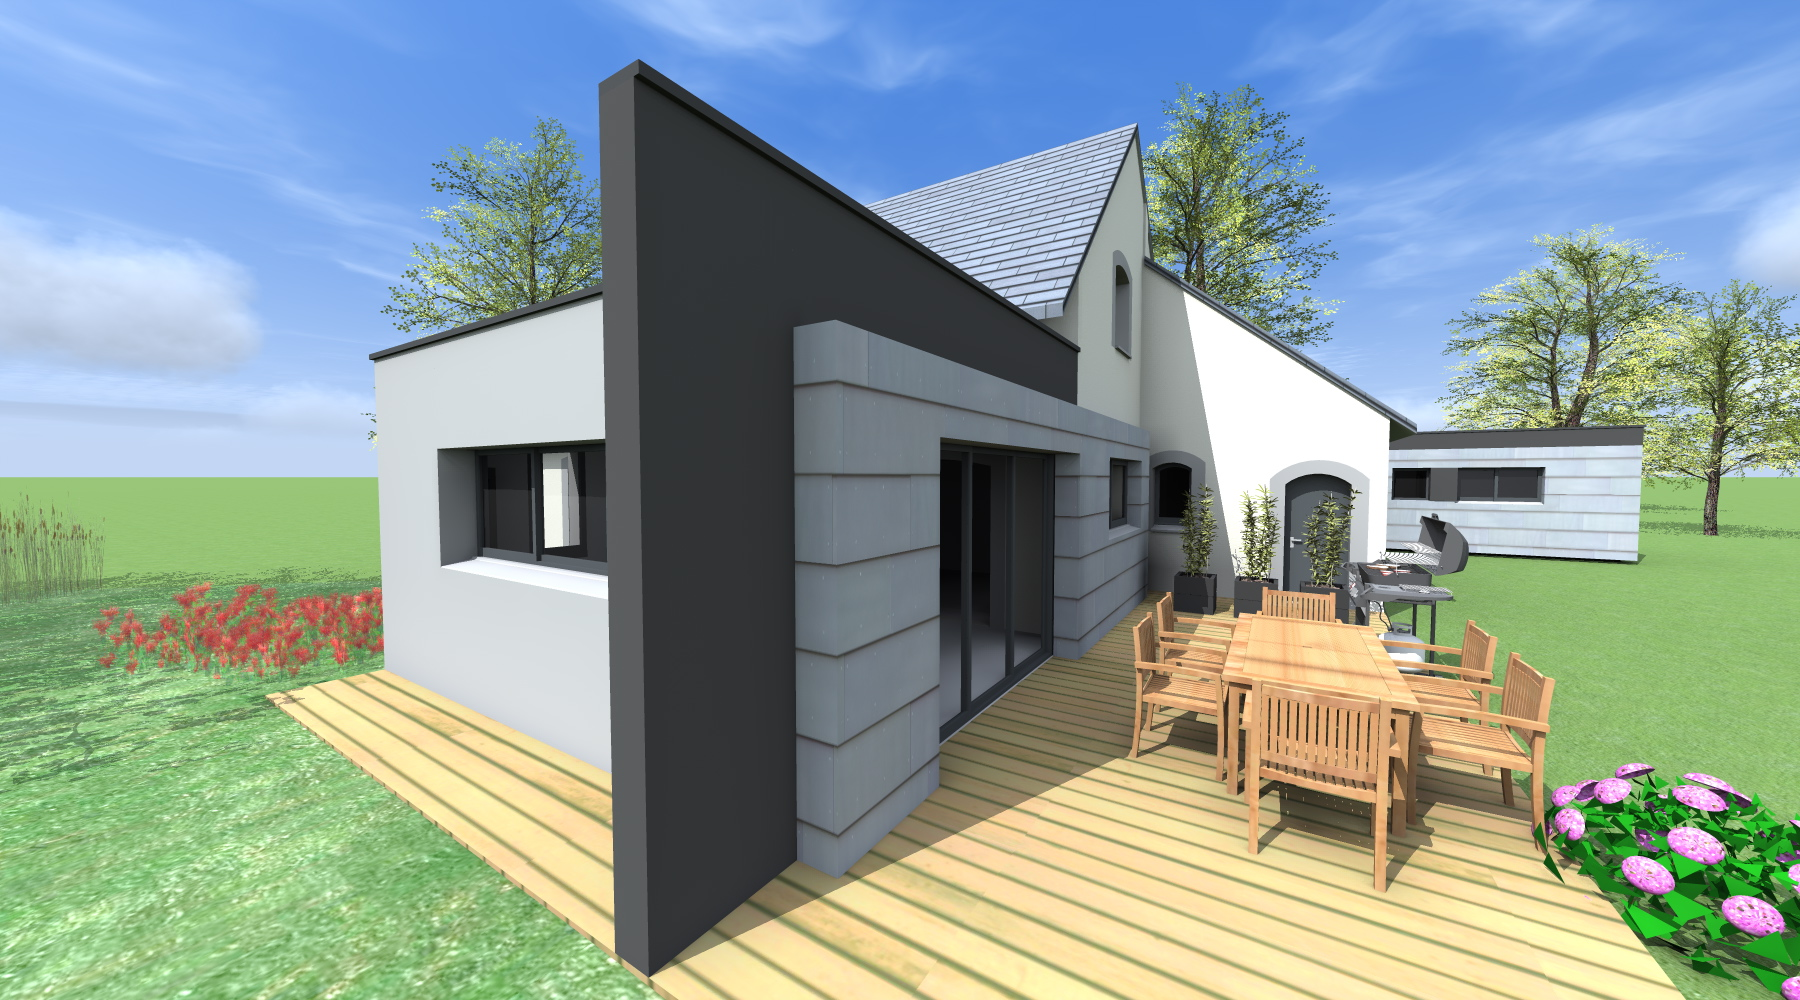 Projet h h 1 2 vue architecte lise roturier rennes for Recours architecte extension garage